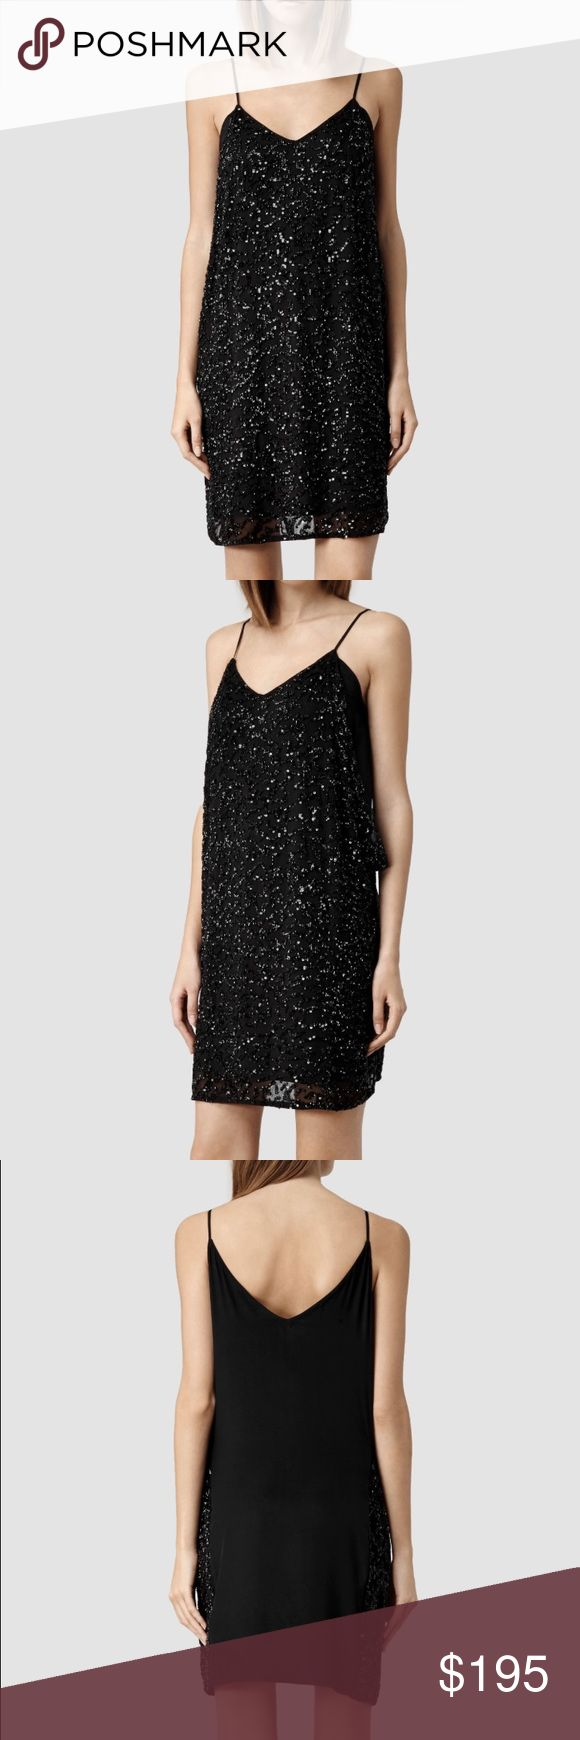 🎉Host Pick!AllSaints Dress Covered in beads and with delicate straps, the back is silk, this is a gorge dress! Never been worn. Brand new. With tag. All Saints Dresses Mini